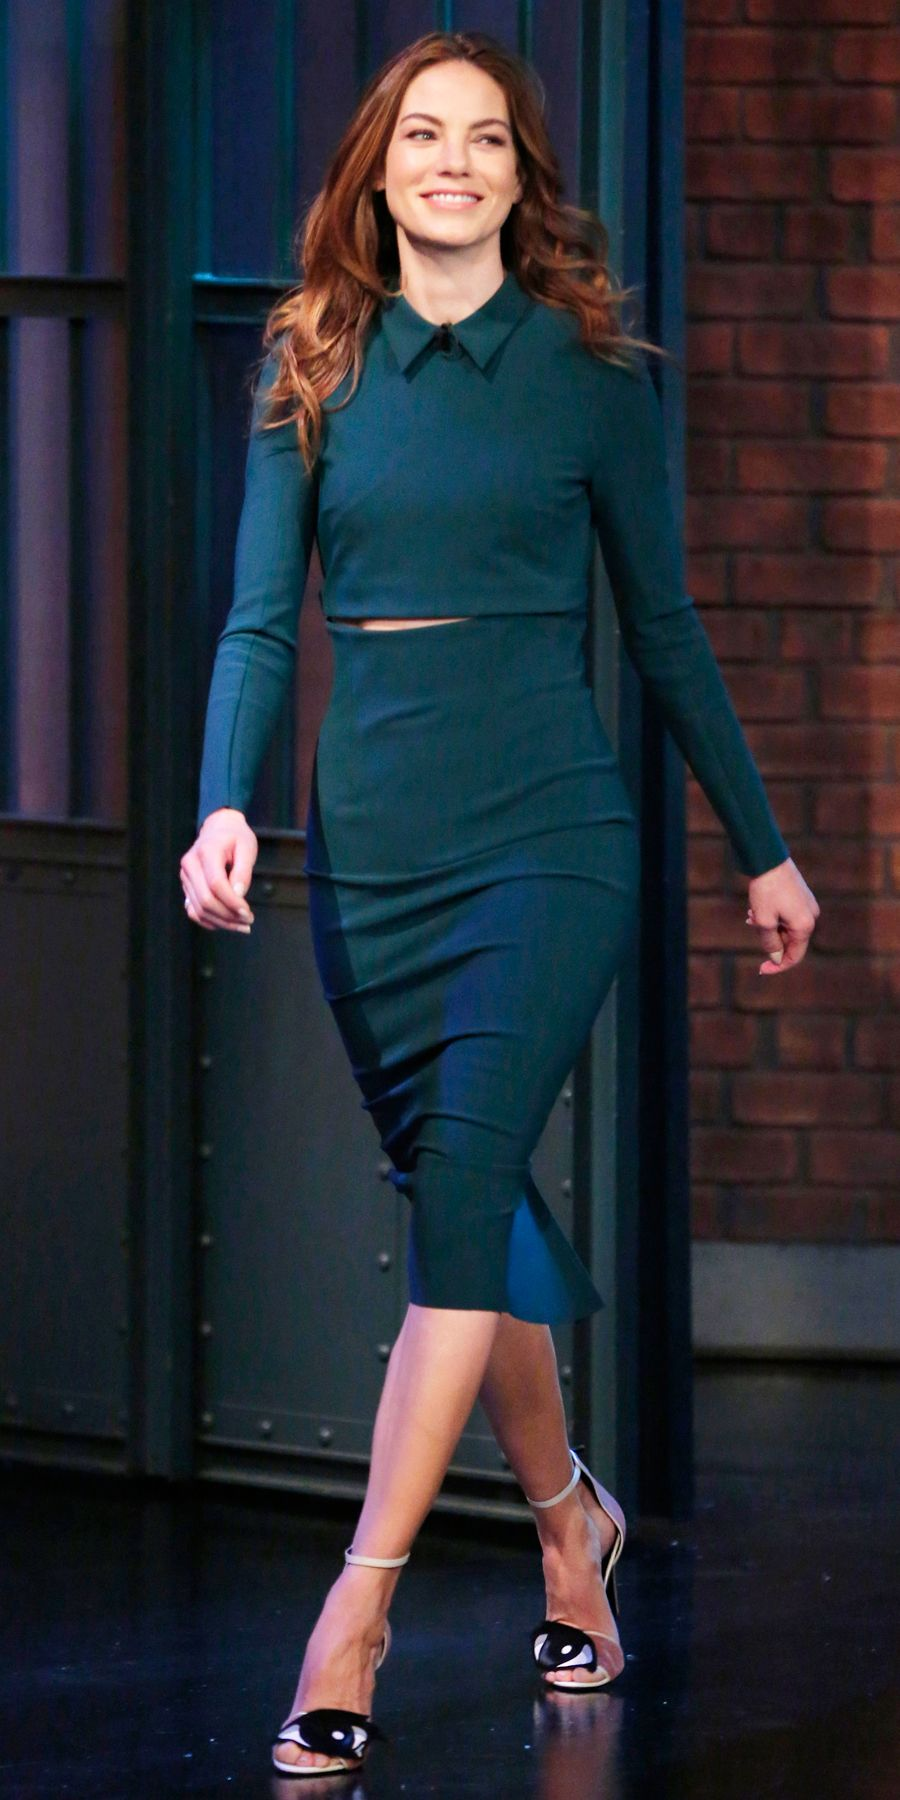 Michelle Monaghan bared just a sliver of midriff for an appearance on the set of Late Night with Seth Meyers in a teal cropped collared top and a high-waist pencil skirt, a streamlined set by Greta Constantine, and playful Pierre Hardy sandals.